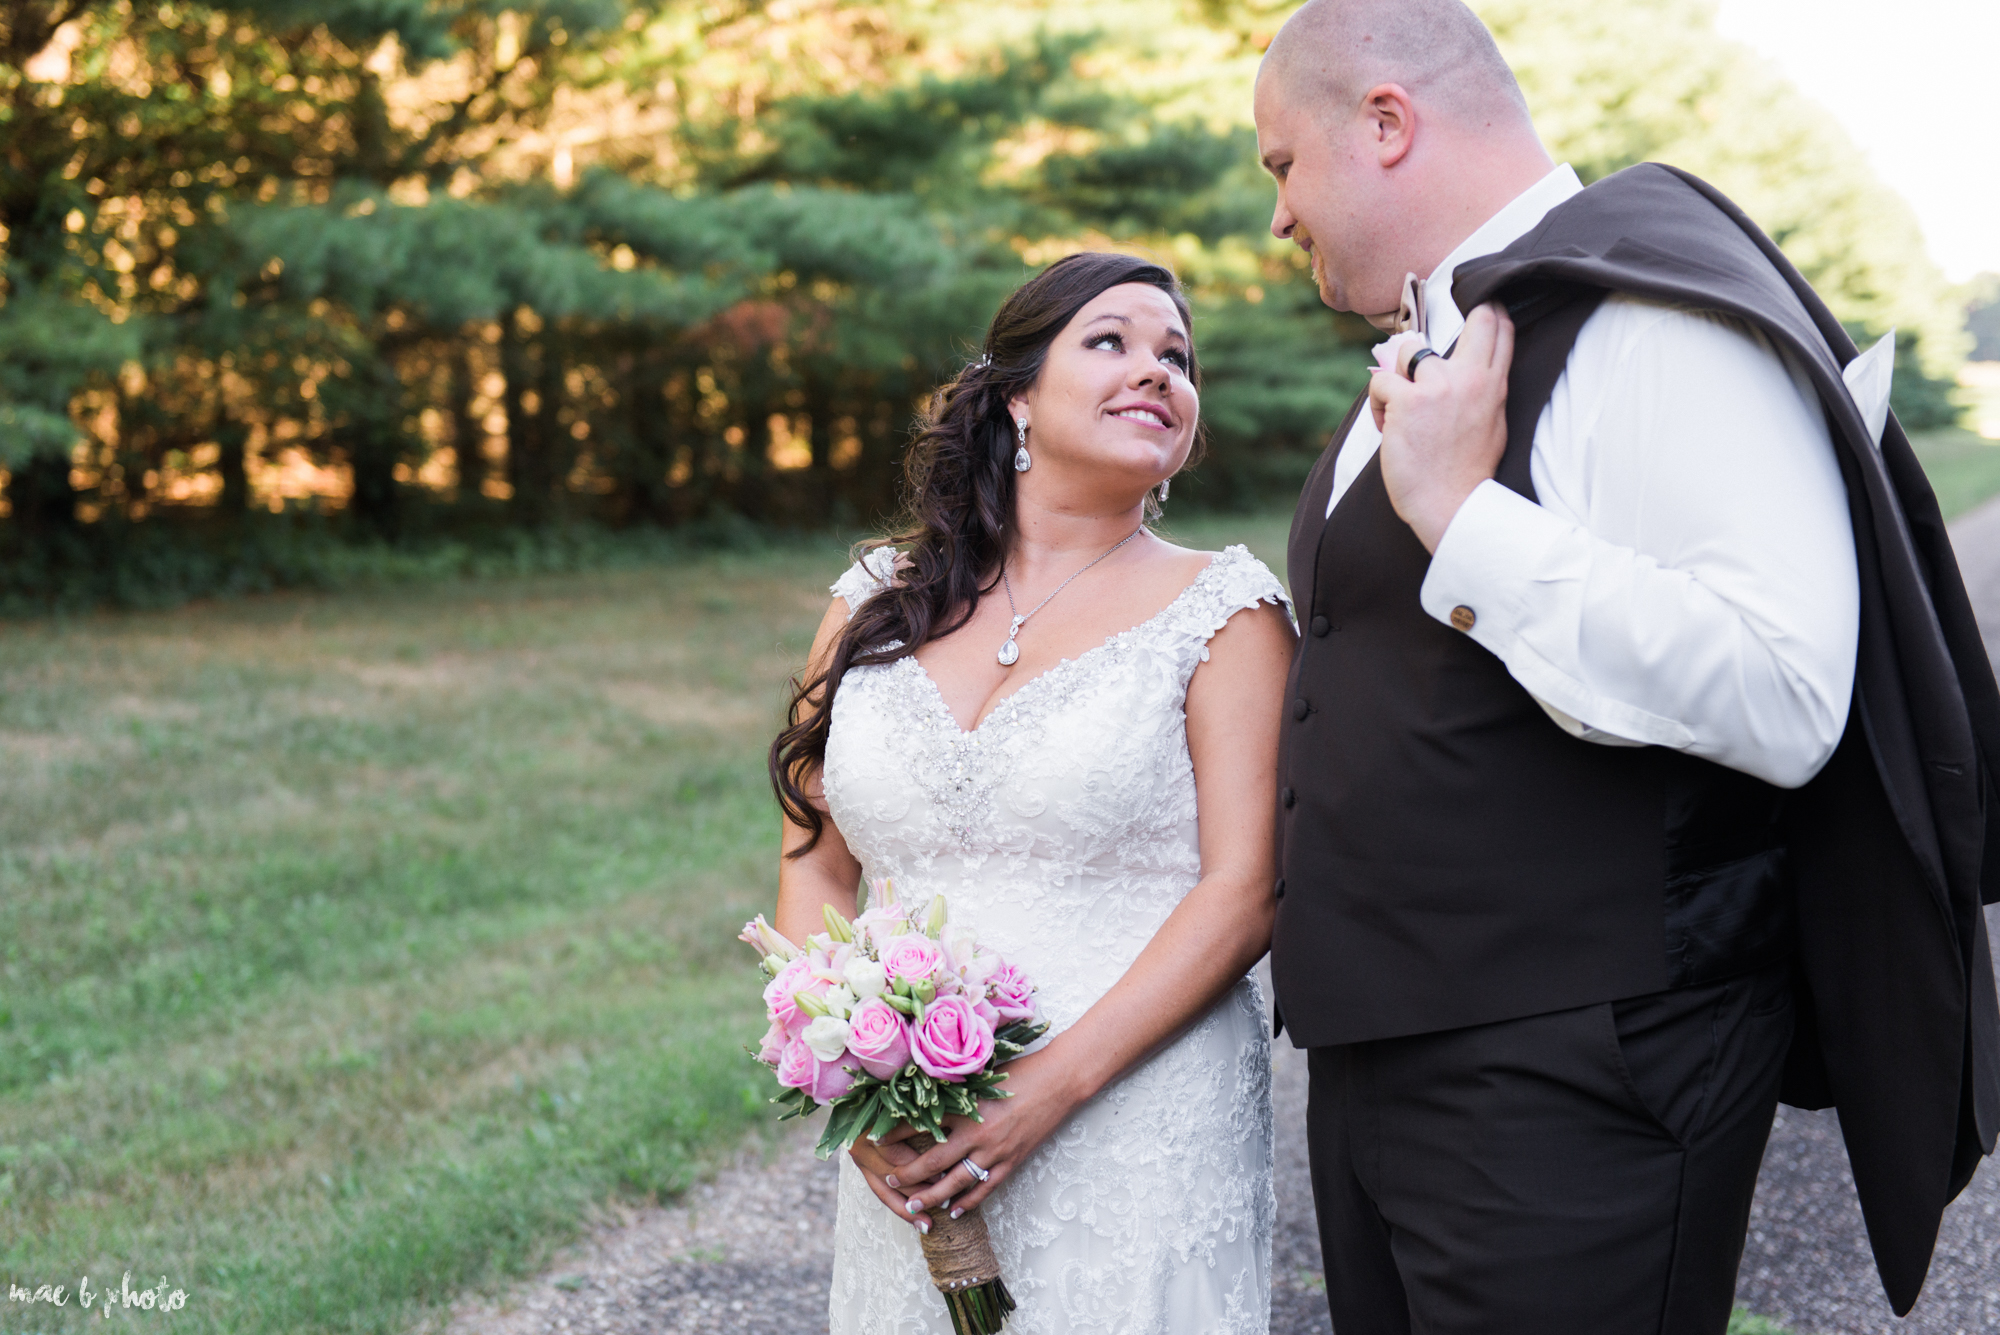 Gabby & Shane's Rustic Intimate Summer Barn Wedding at The Barn in Salem, Ohio Photographed by Mae B Photo-1.jpg